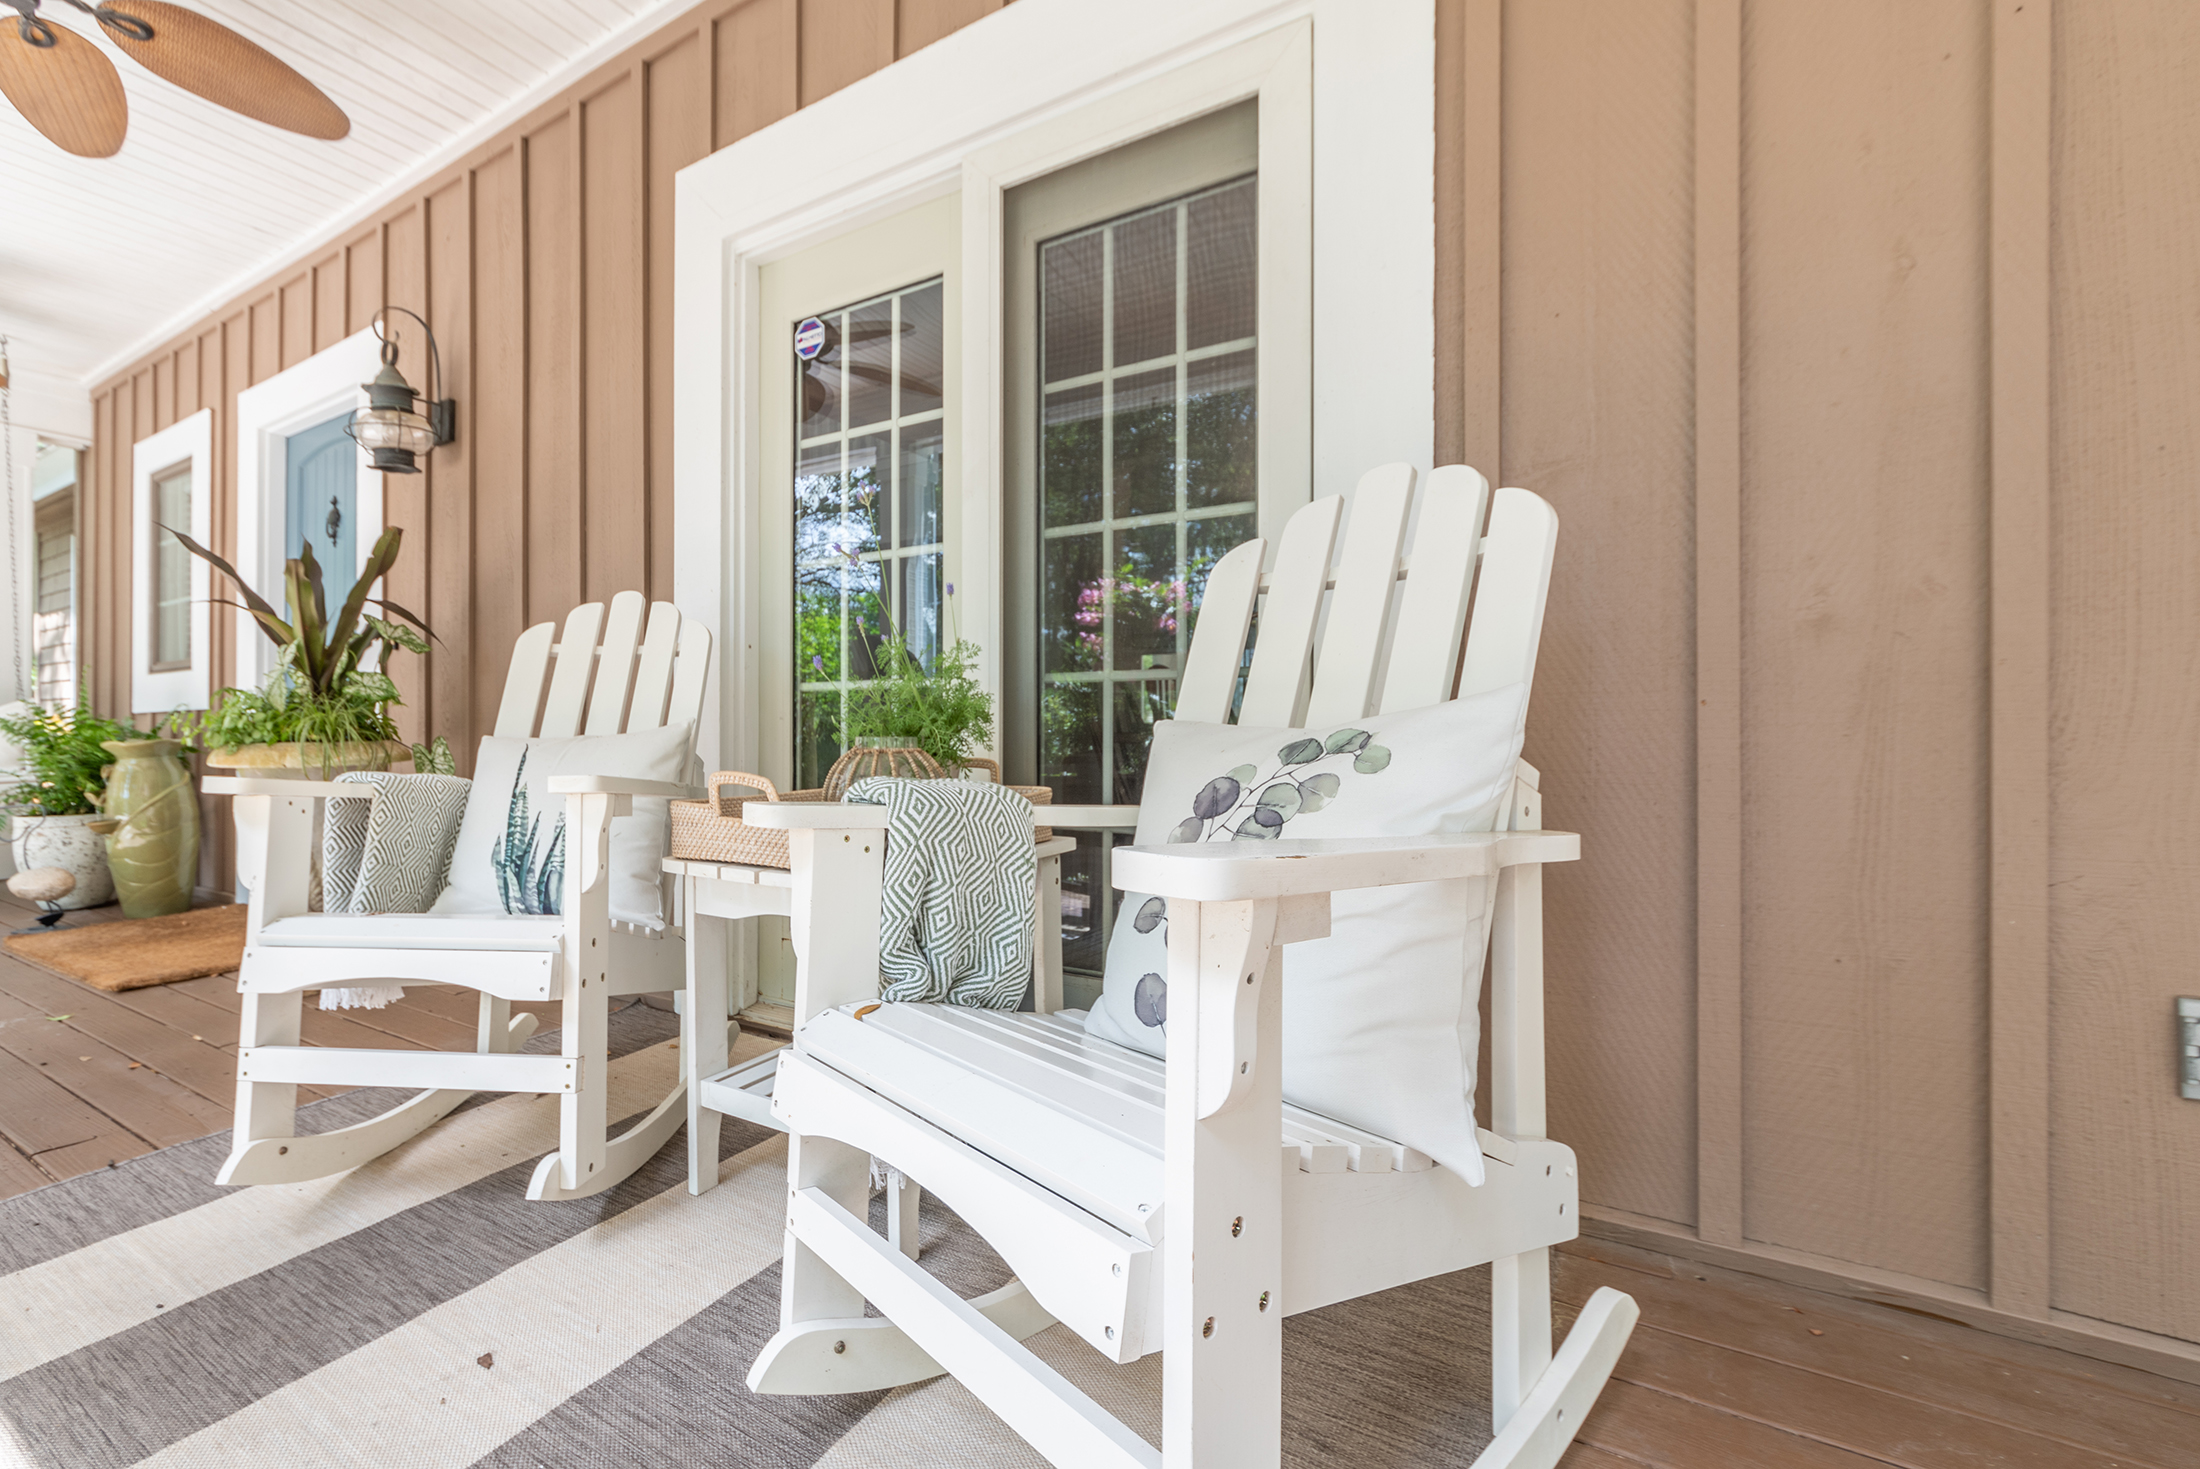 Want to live on Hilton Head Island but away from tourist?